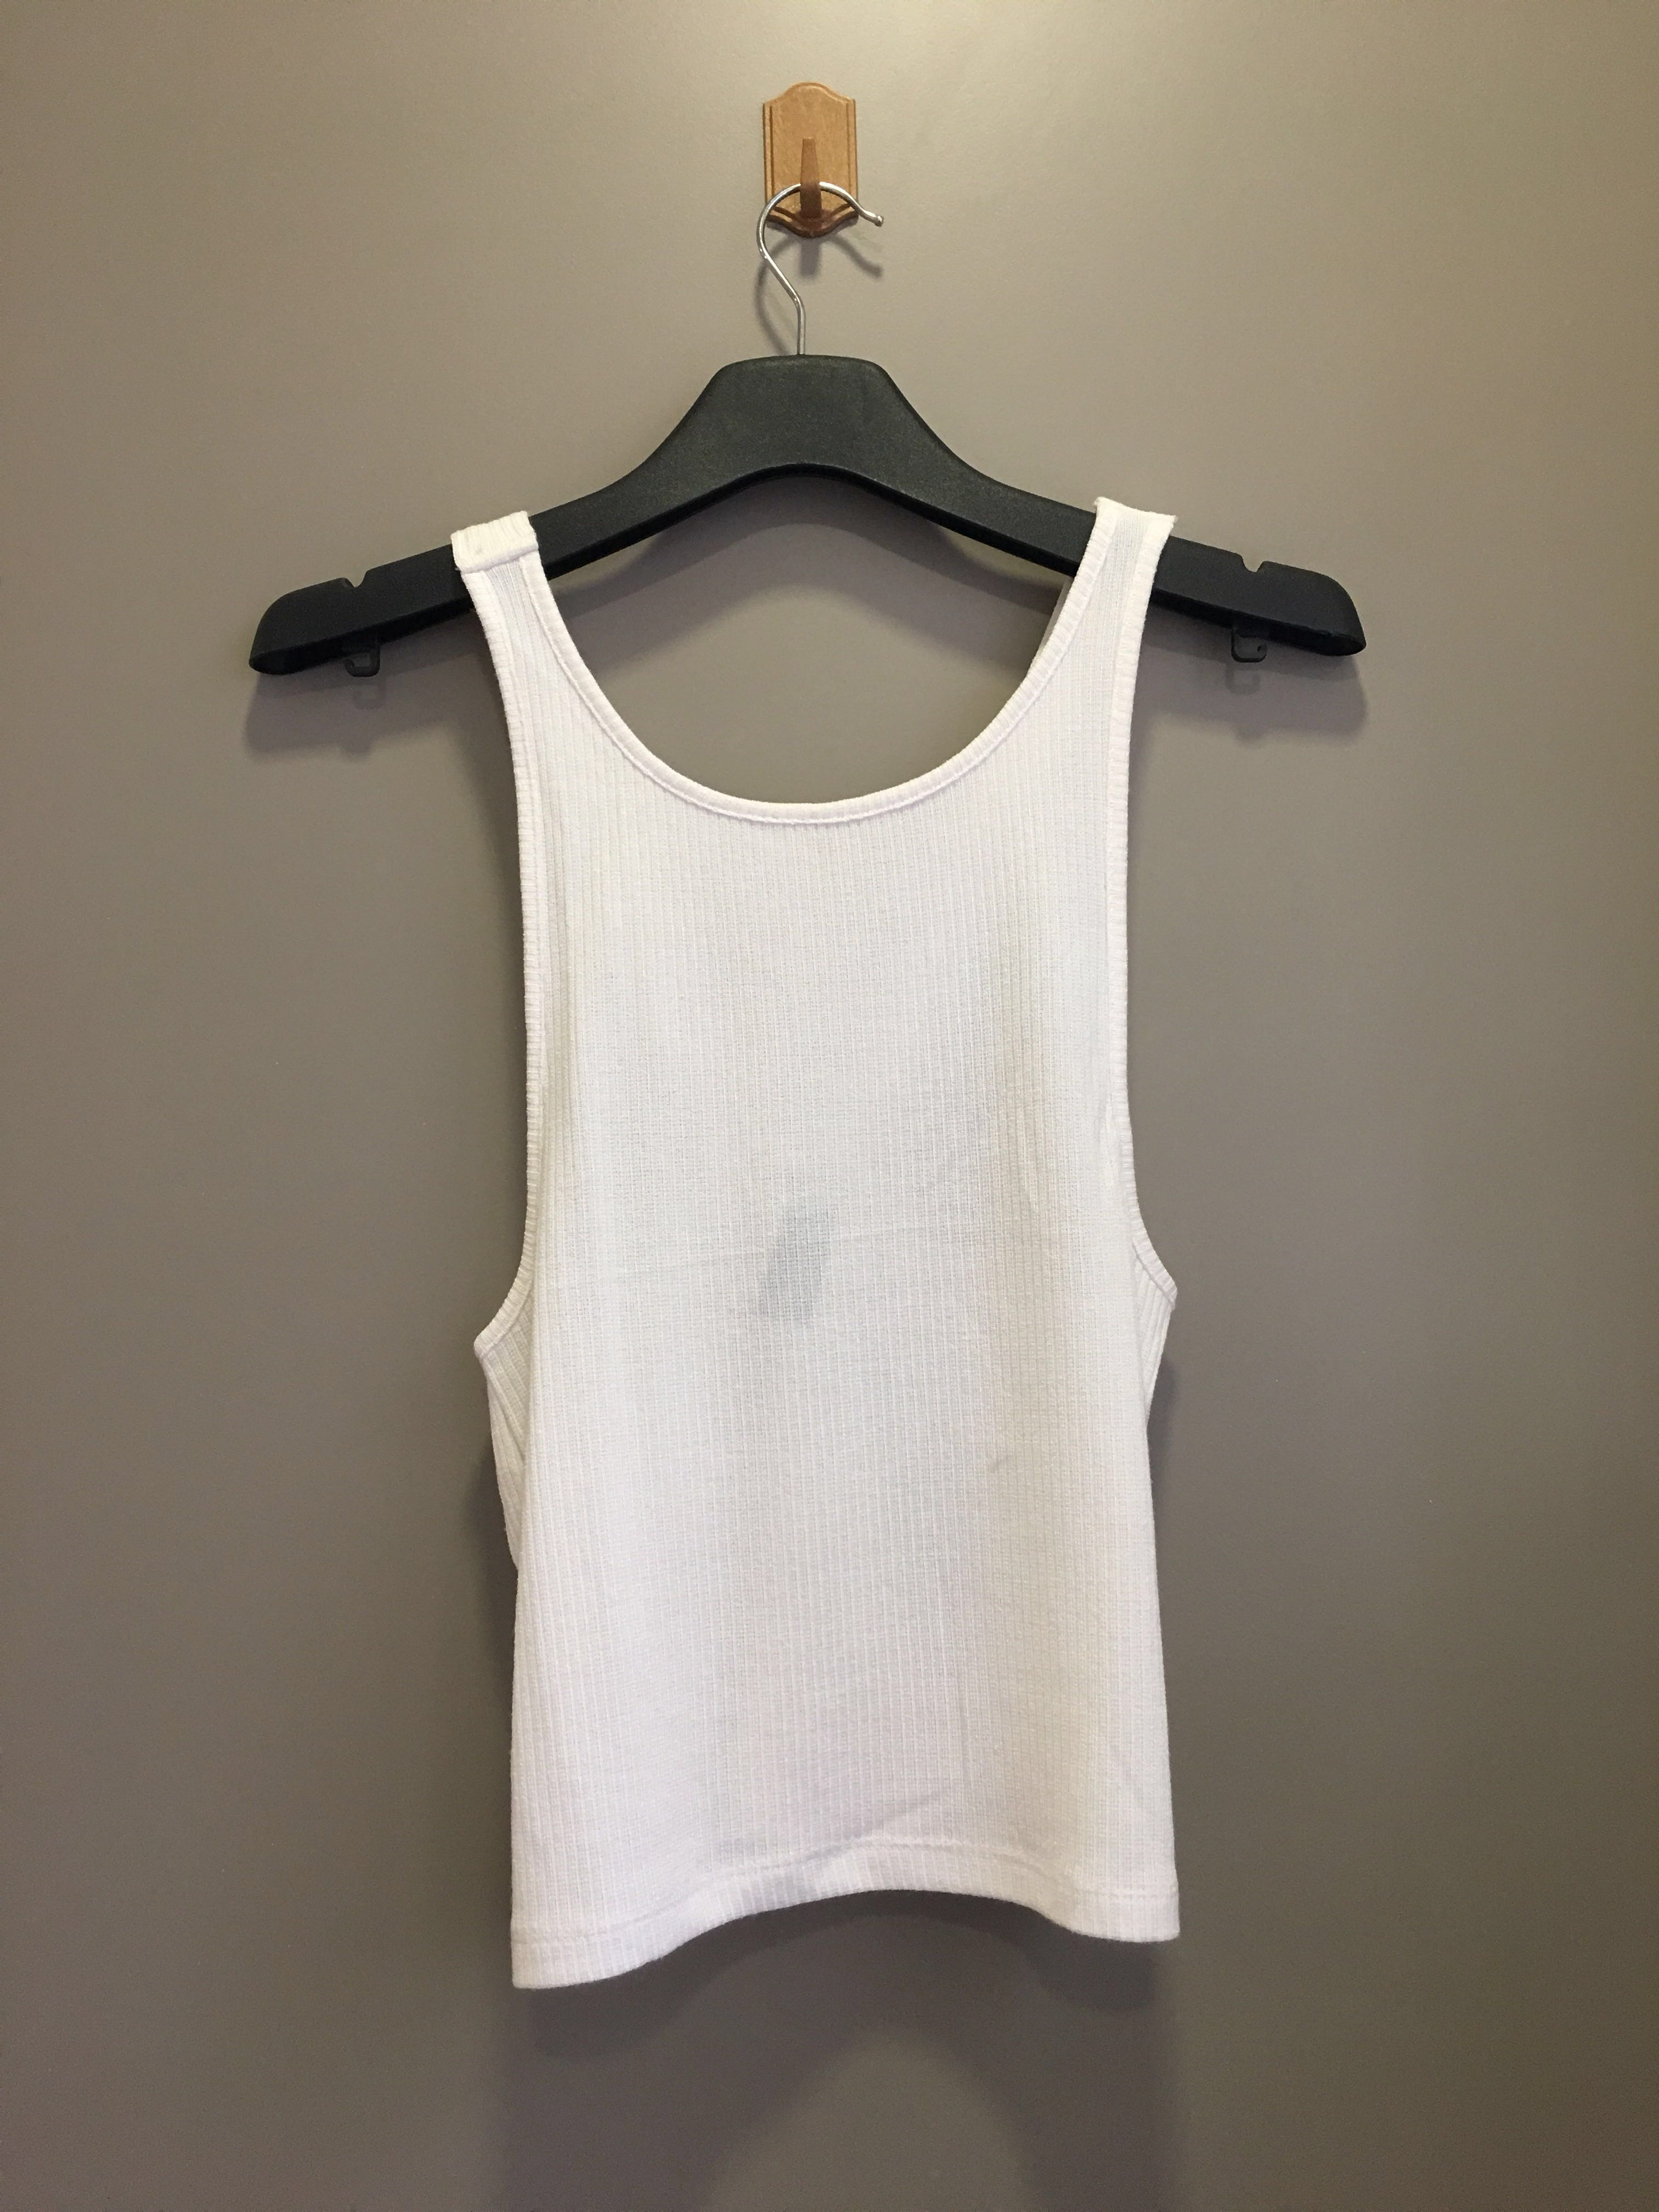 70aece438e4bff White knit revealing top, Women's Fashion, Clothes, Tops on Carousell